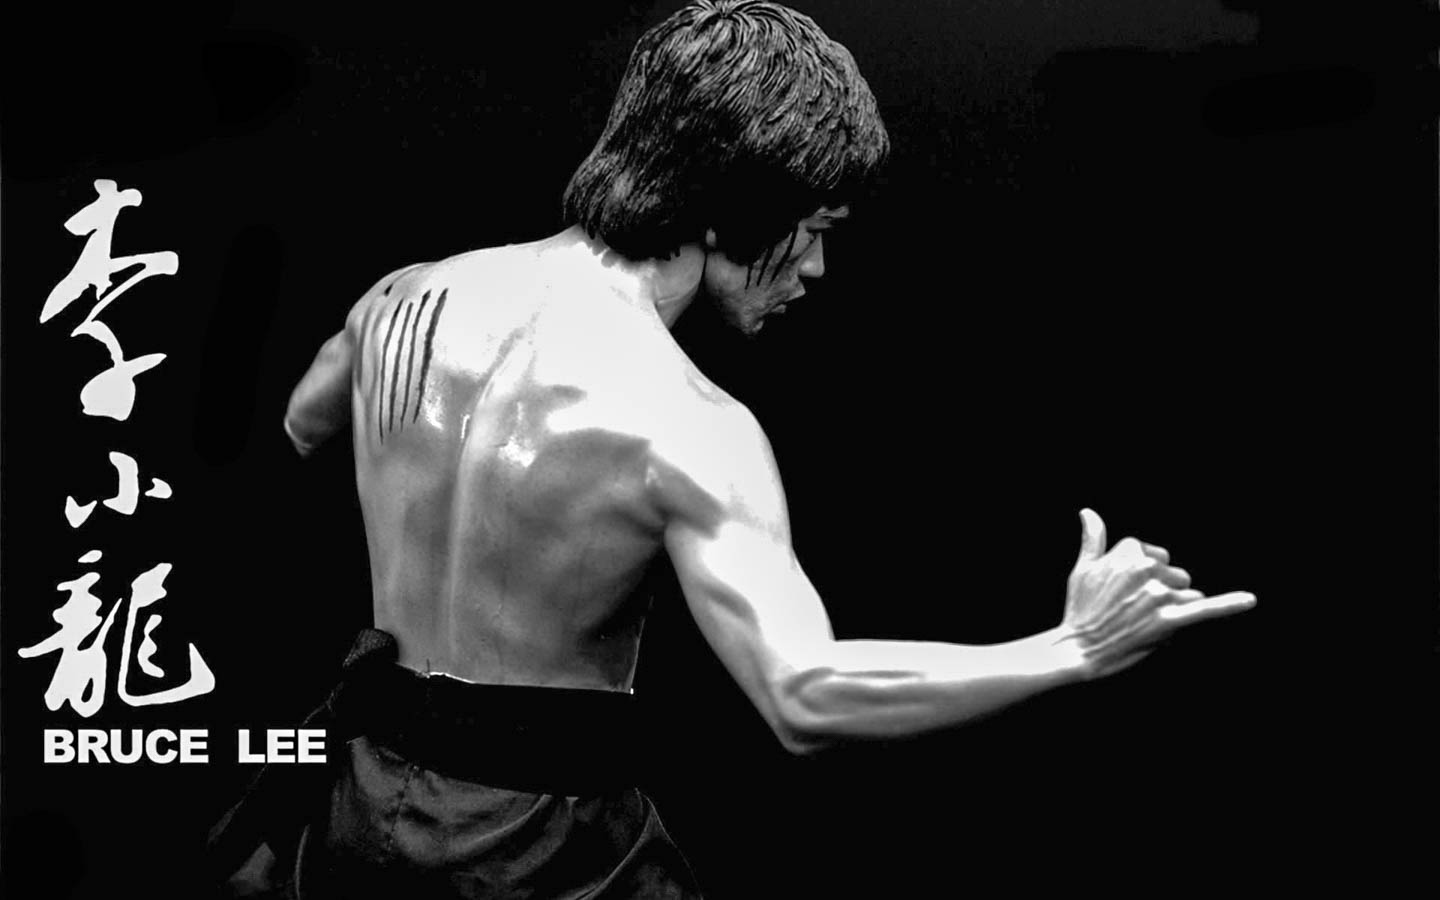 Bruce Lee Quote Iphone Wallpaper Bruce Lee 2017 Hd Wallpapers Collection